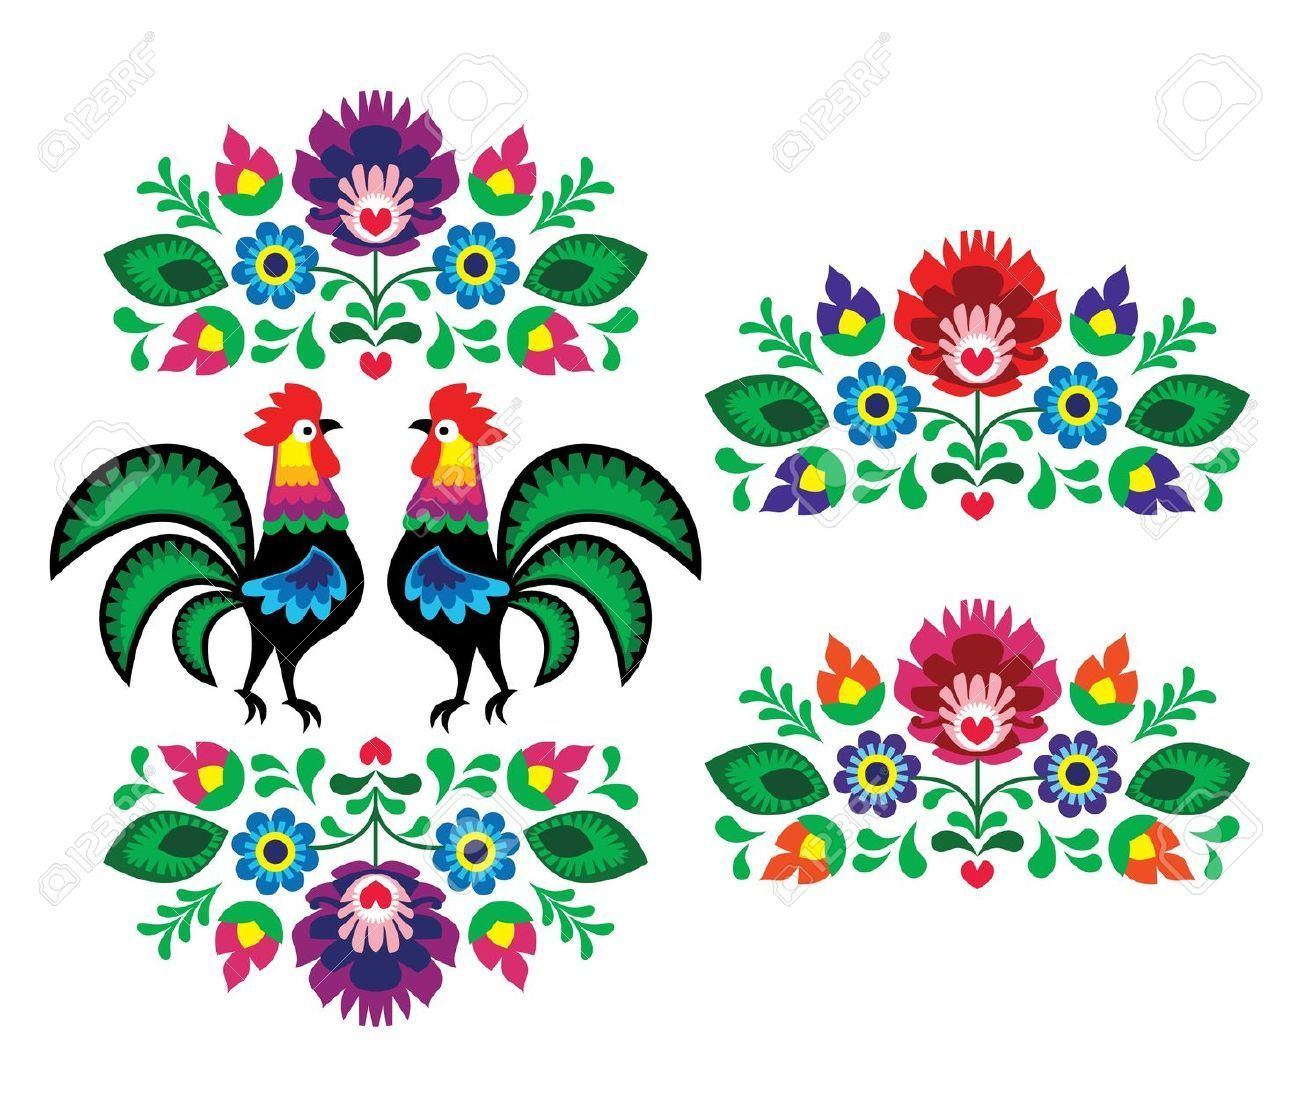 Mexican embroidery clipart 6 » Clipart Portal.